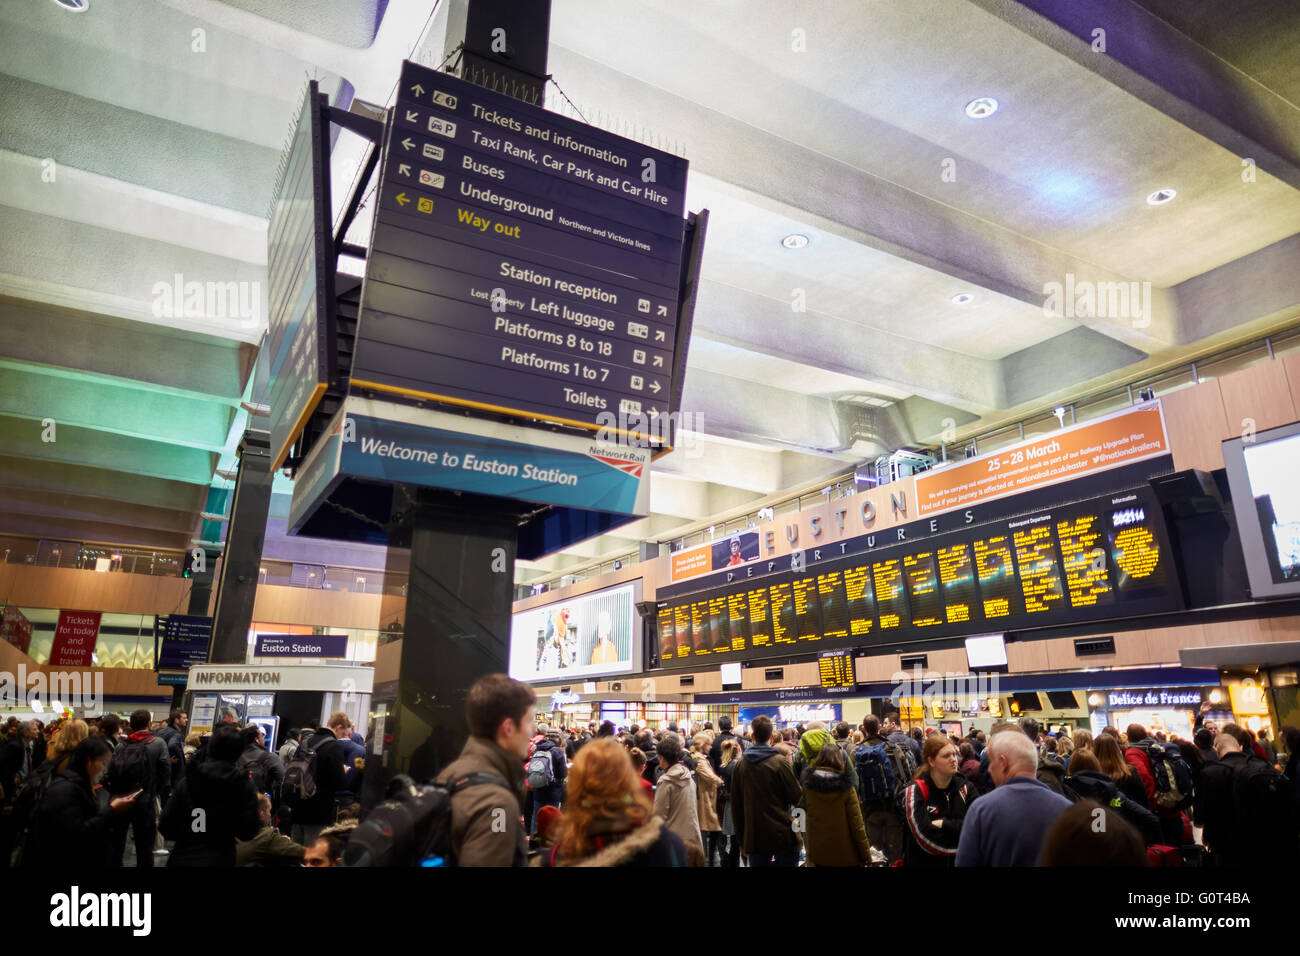 london Euston railway station concourse destination boards waiting area rush crush information point west coast - Stock Image